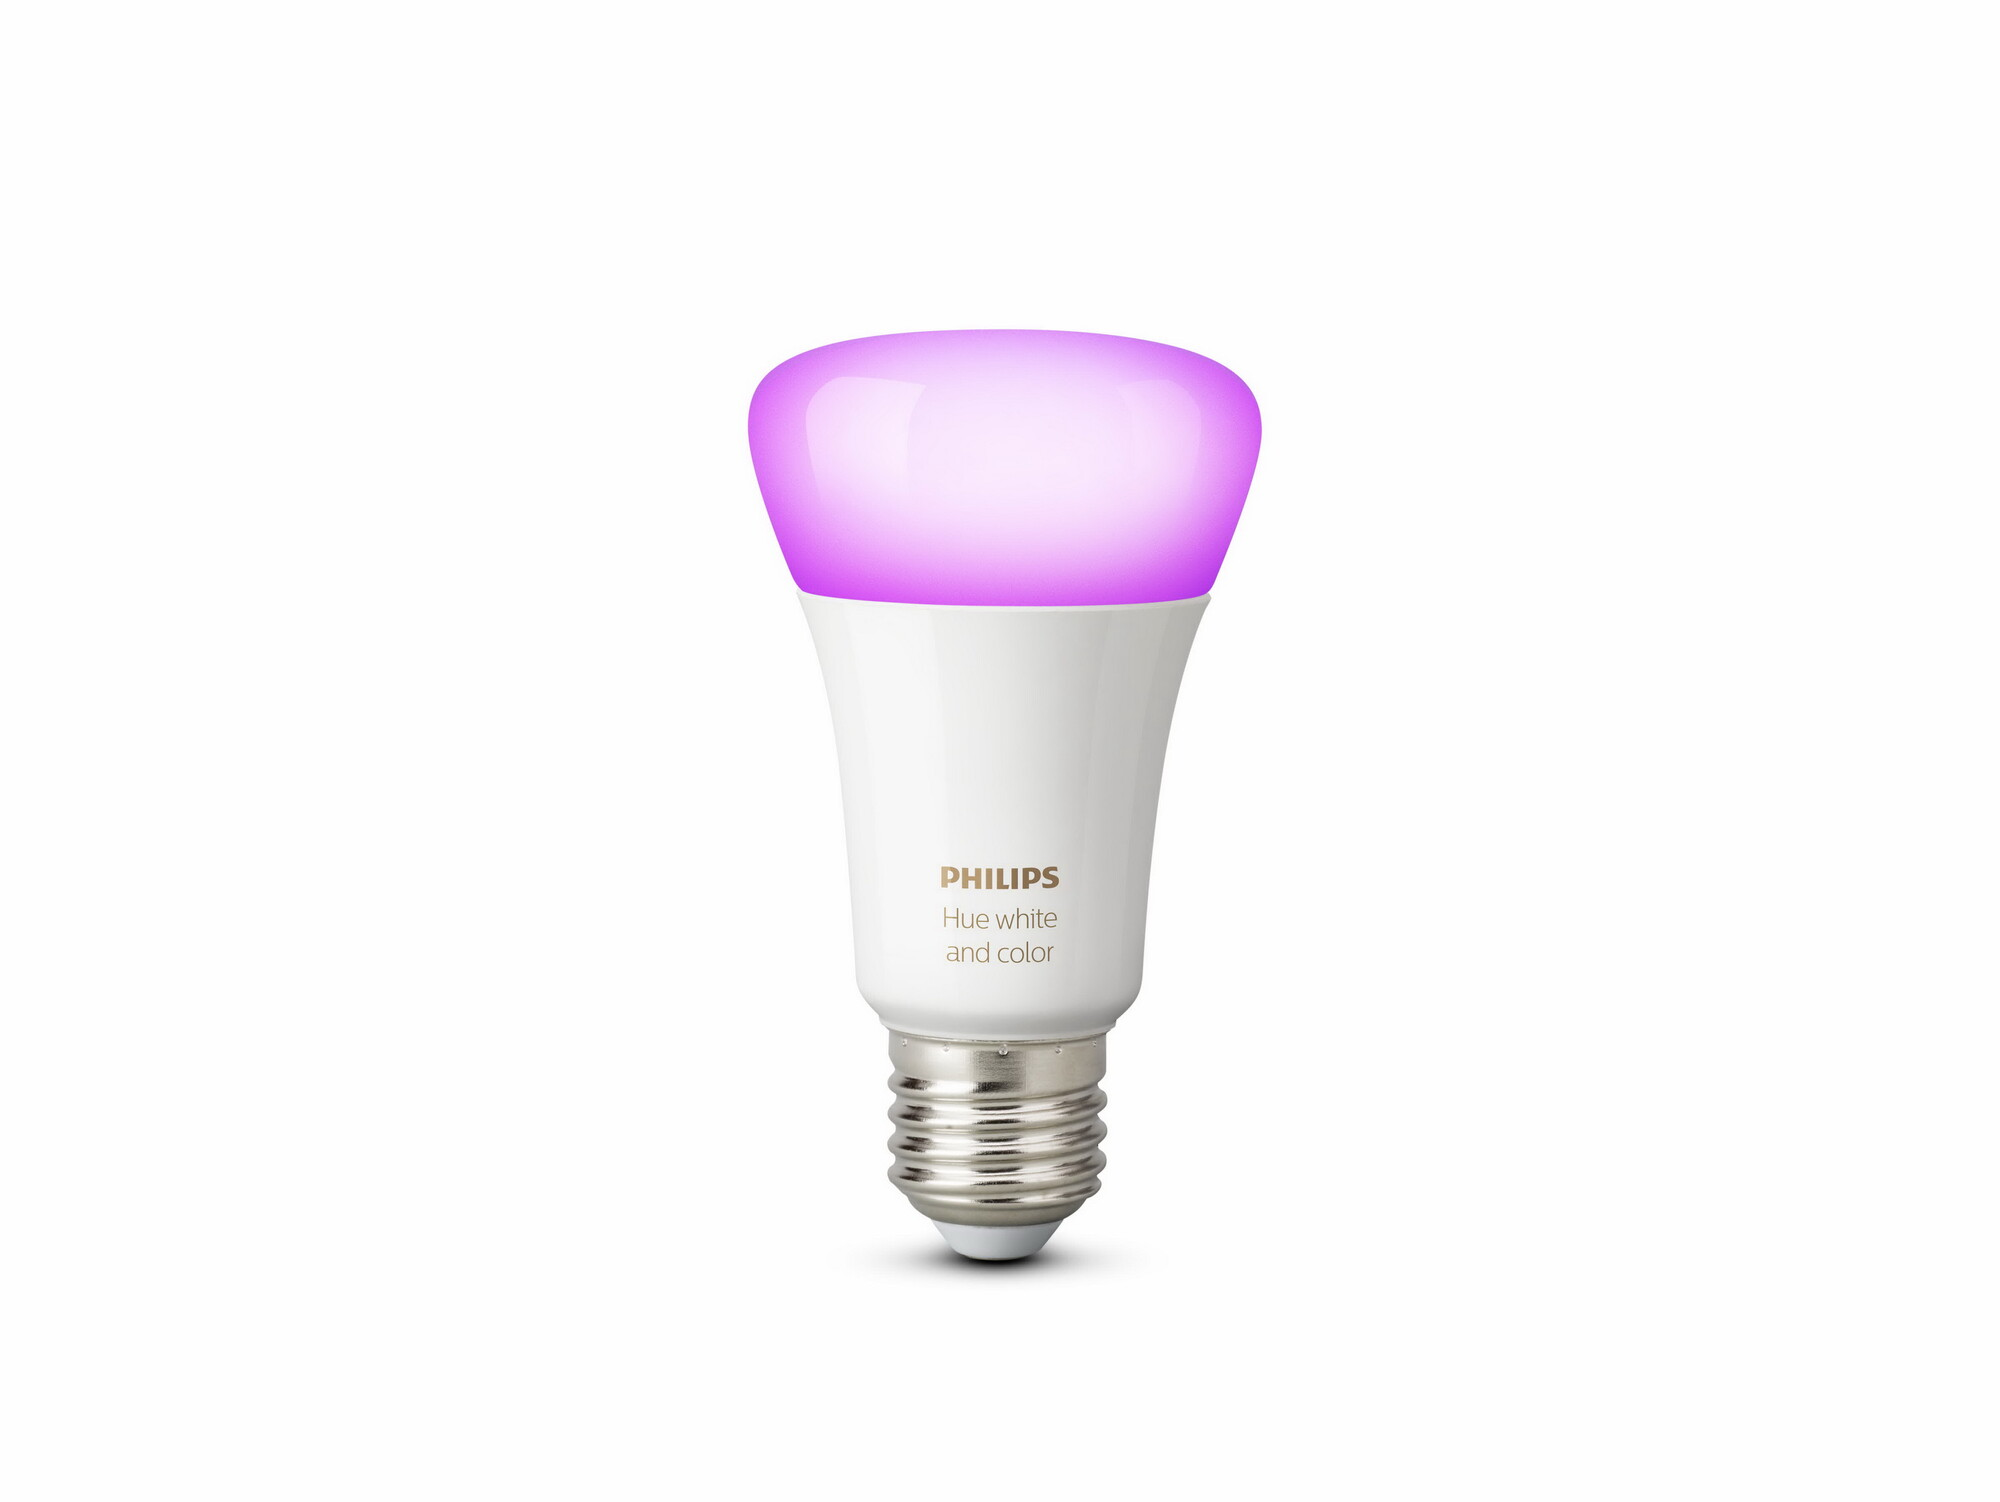 Philips HUE White and color ambiance E27 9W 806lm 2000K-6500K Lamp Frosted